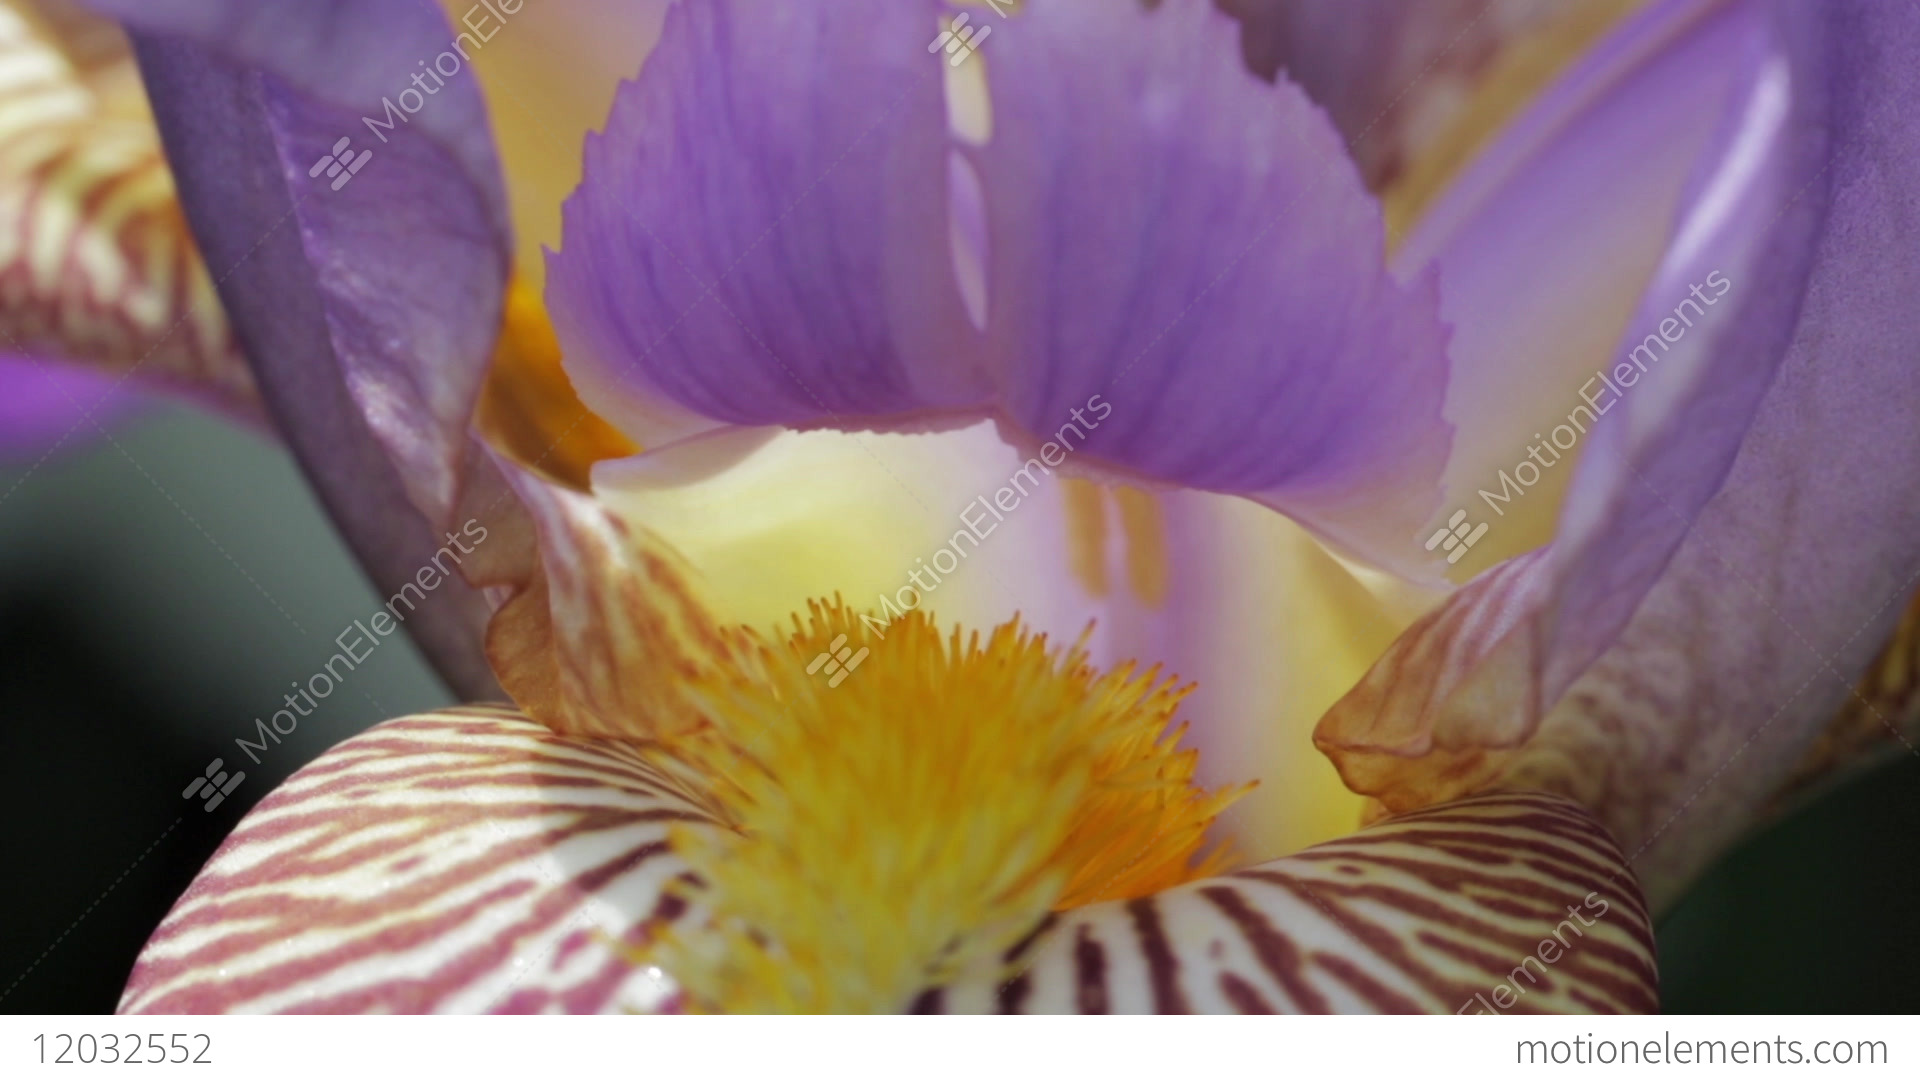 Beautiful and delicate iris flower blossom close up purple yellow beautiful and delicate iris flower blossom close up stock video footage izmirmasajfo